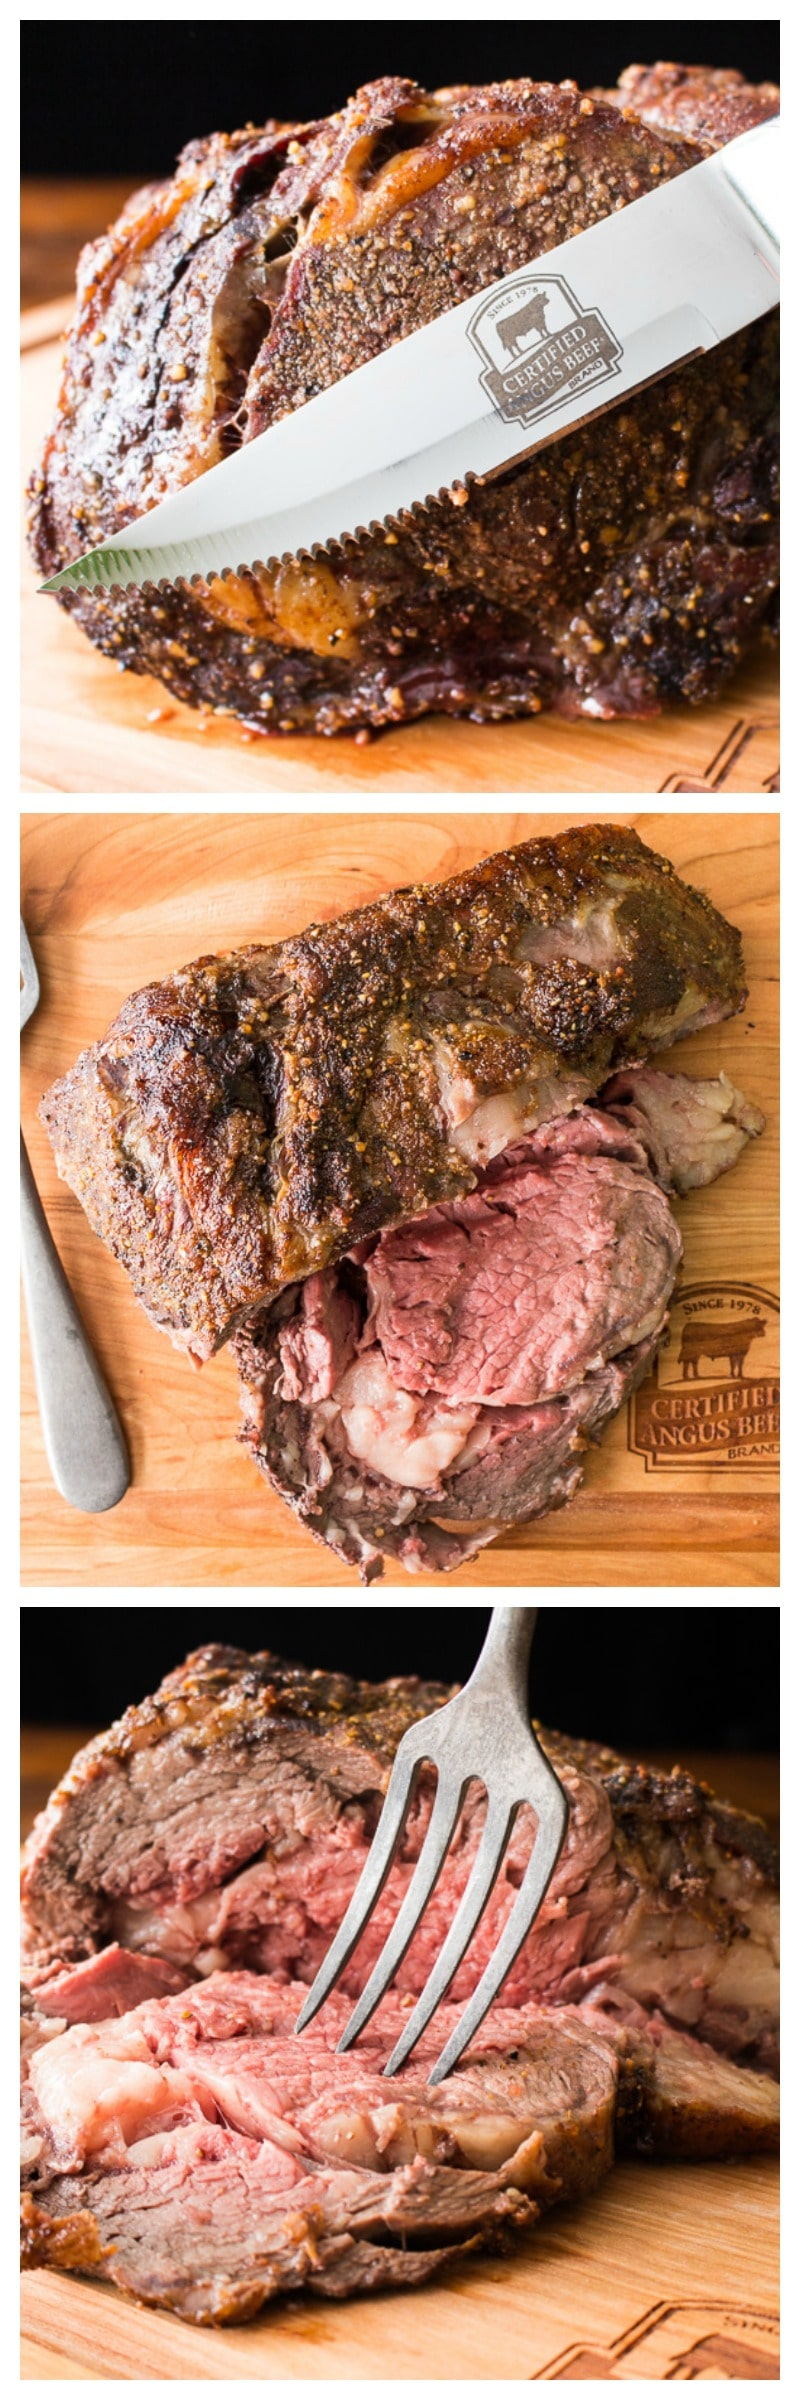 With a flavorful crust on the outside and perfectly tender meat on the inside, this bone-in rib roast is surprisingly easy! Made with only a couple of ingredients and with simple cooking instructions.